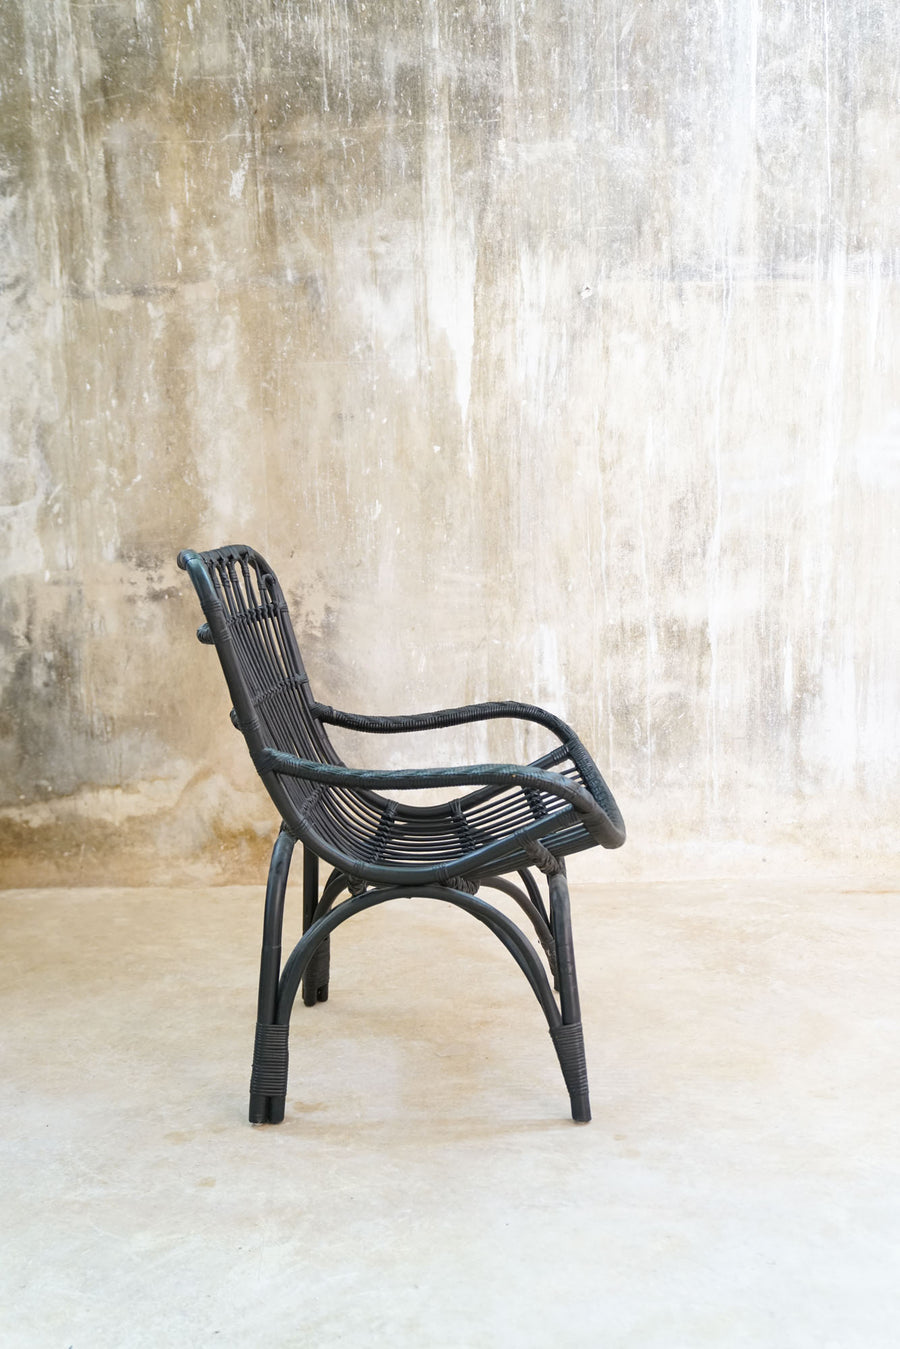 BLACK RATAN CHAIR